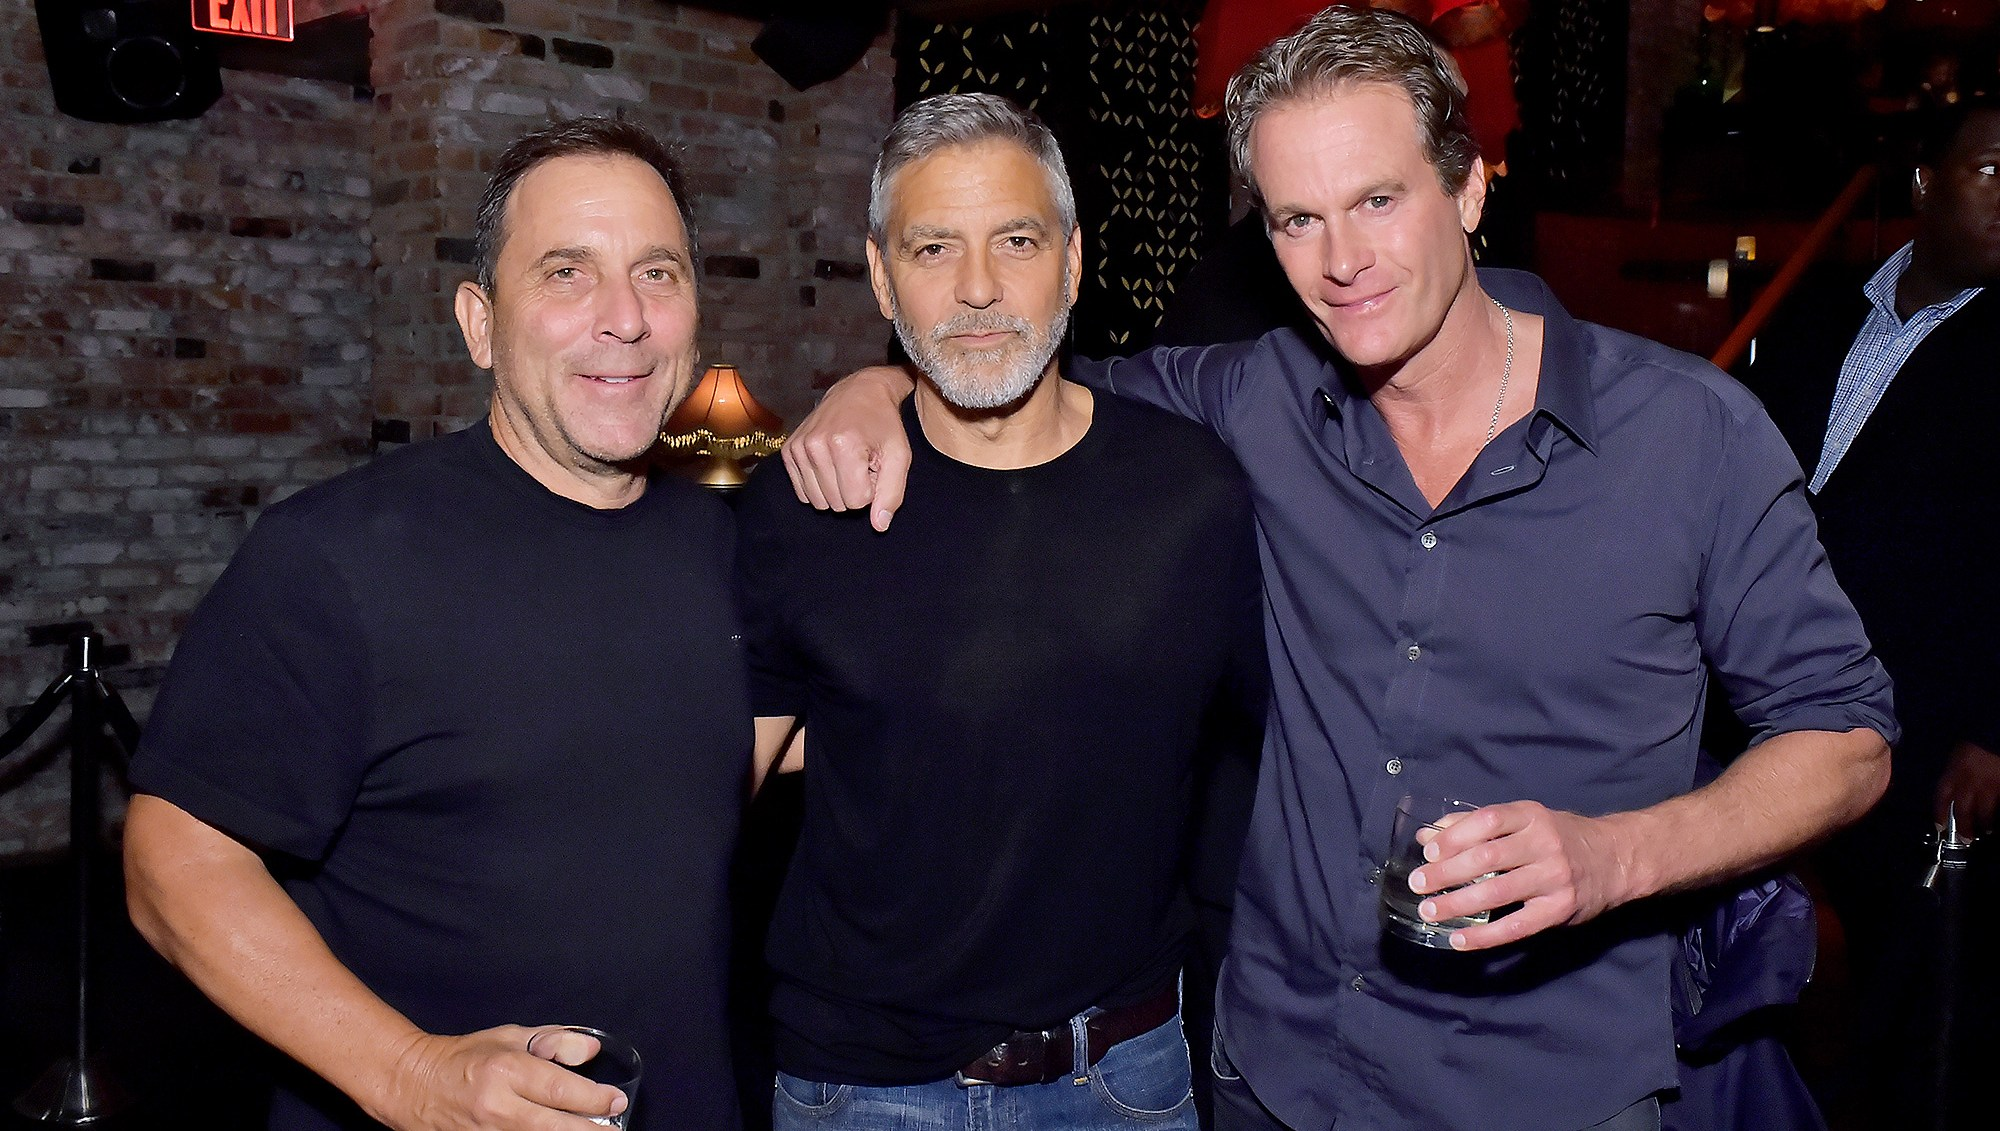 Mike Meldman, George Clooney, Proud Dad, Rande Gerber, Casamigos House of Friends Dinner